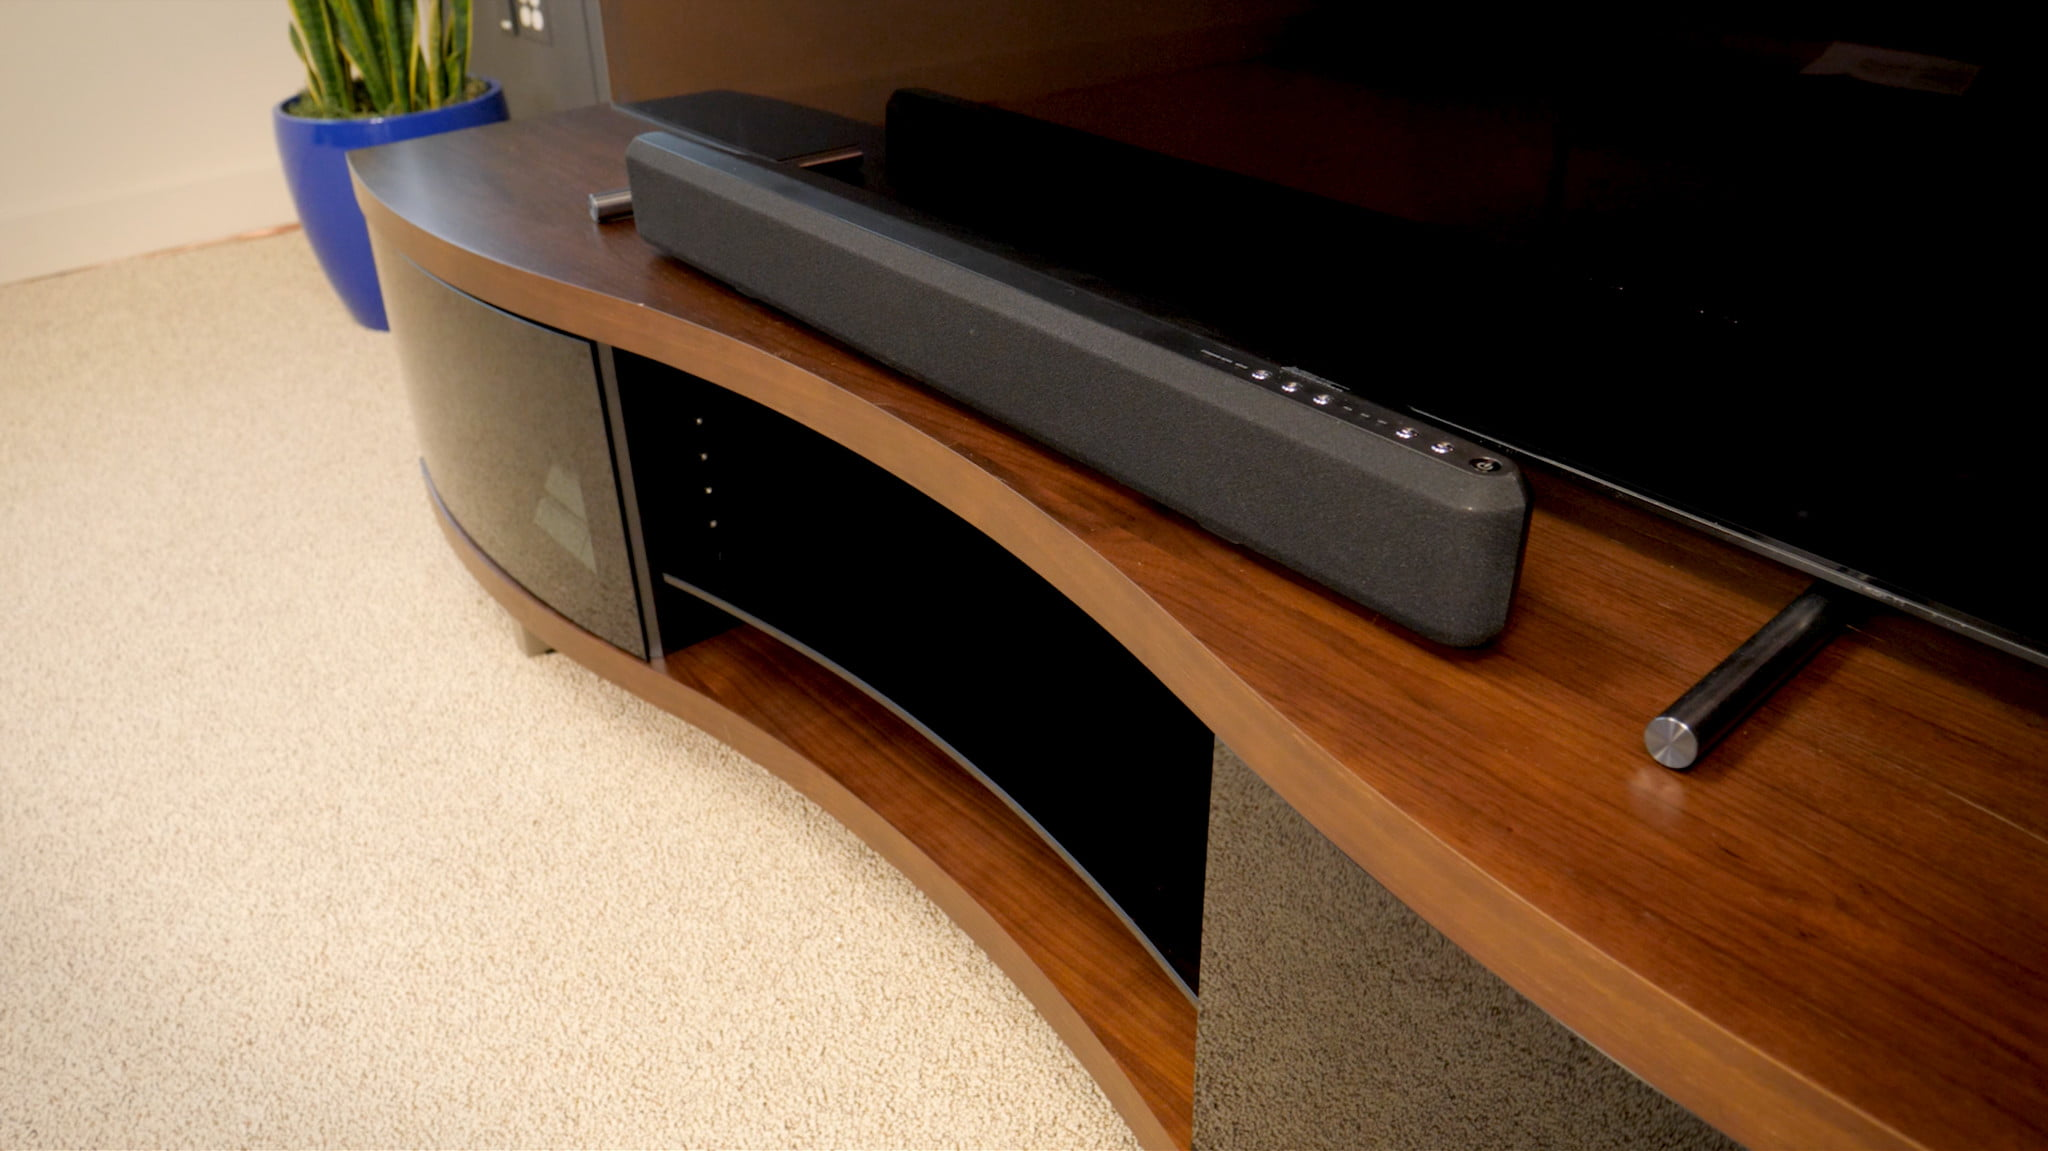 How To Buy a Soundbar  Here s an In-Depth Overview   Digital Trends 011fc3c2102c